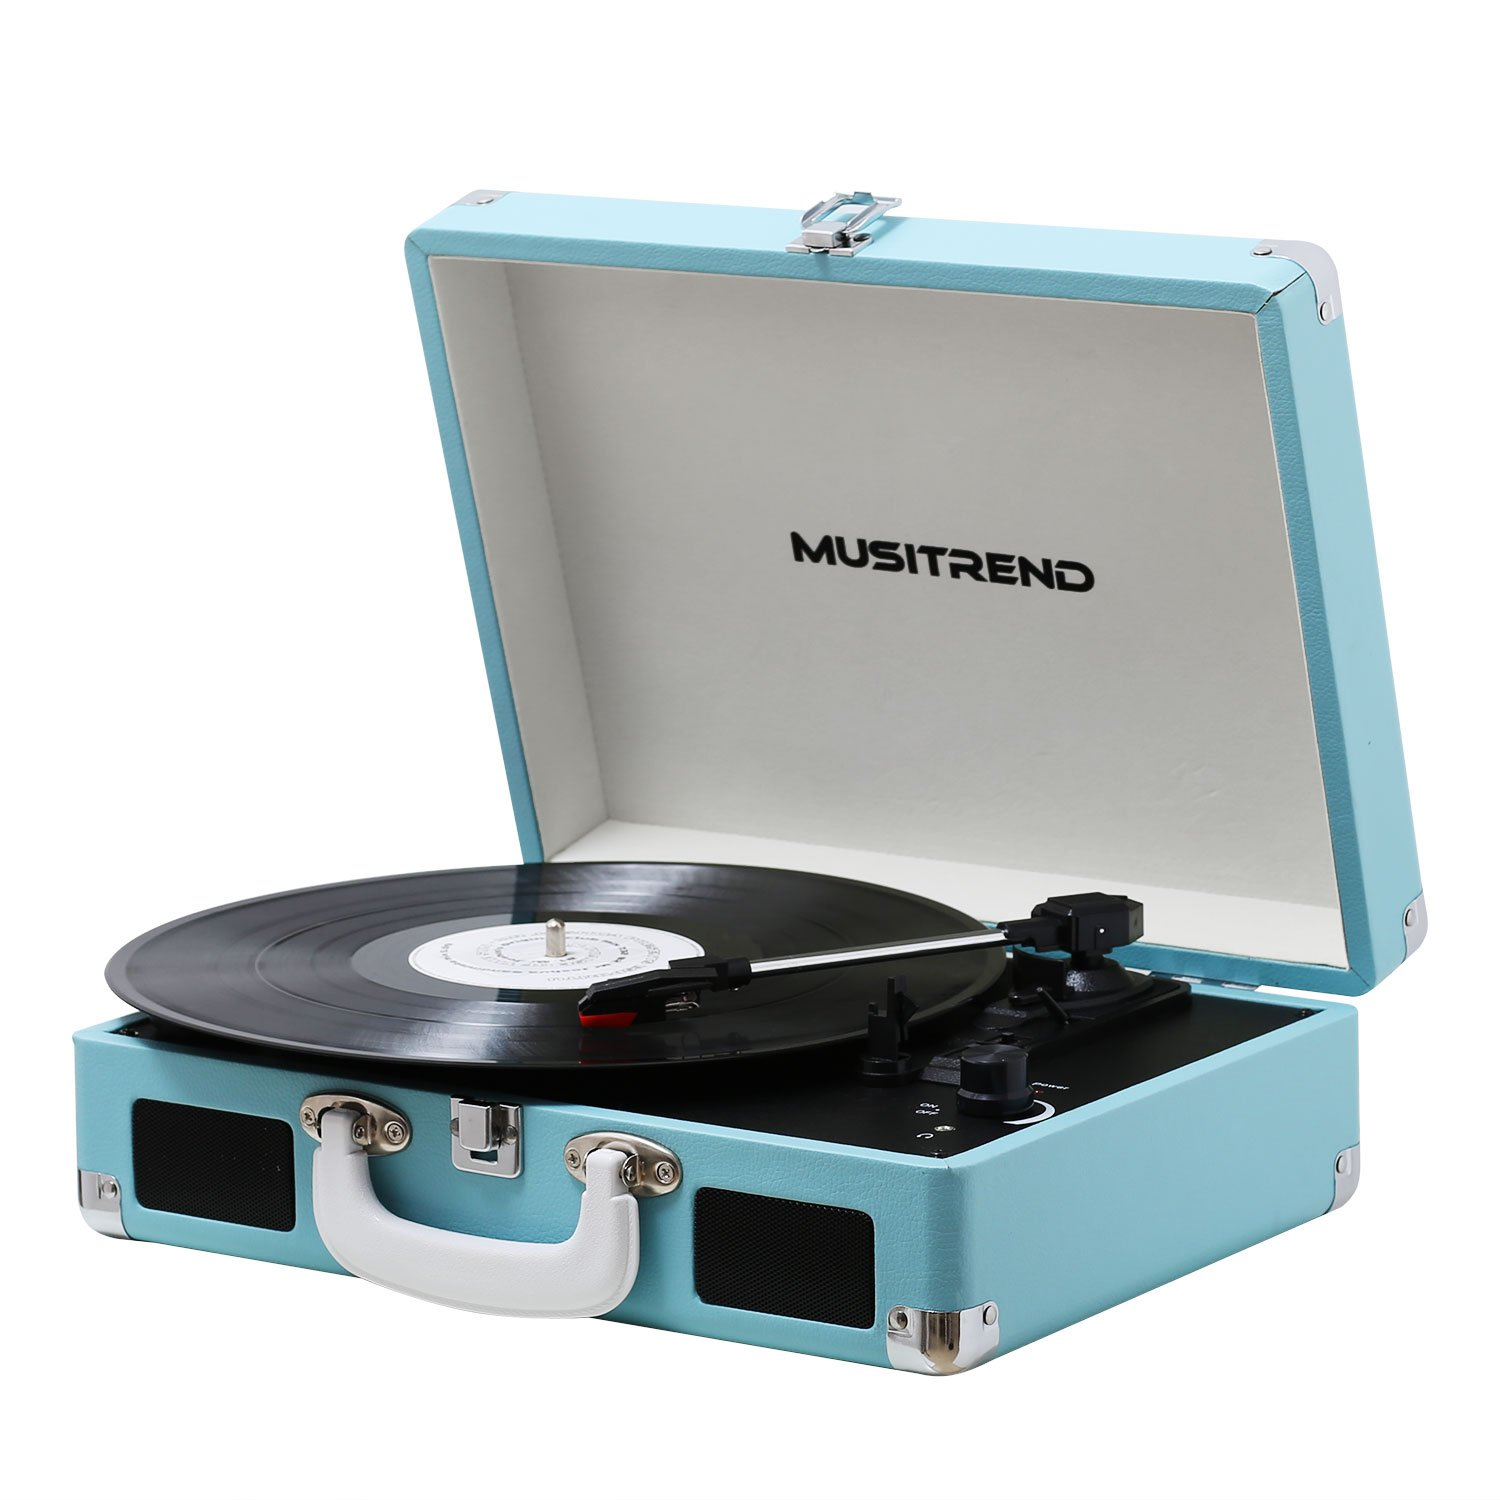 MUSITREND Record Player Portable Suitcase 3 Speed Stereo Turntable (Blue)